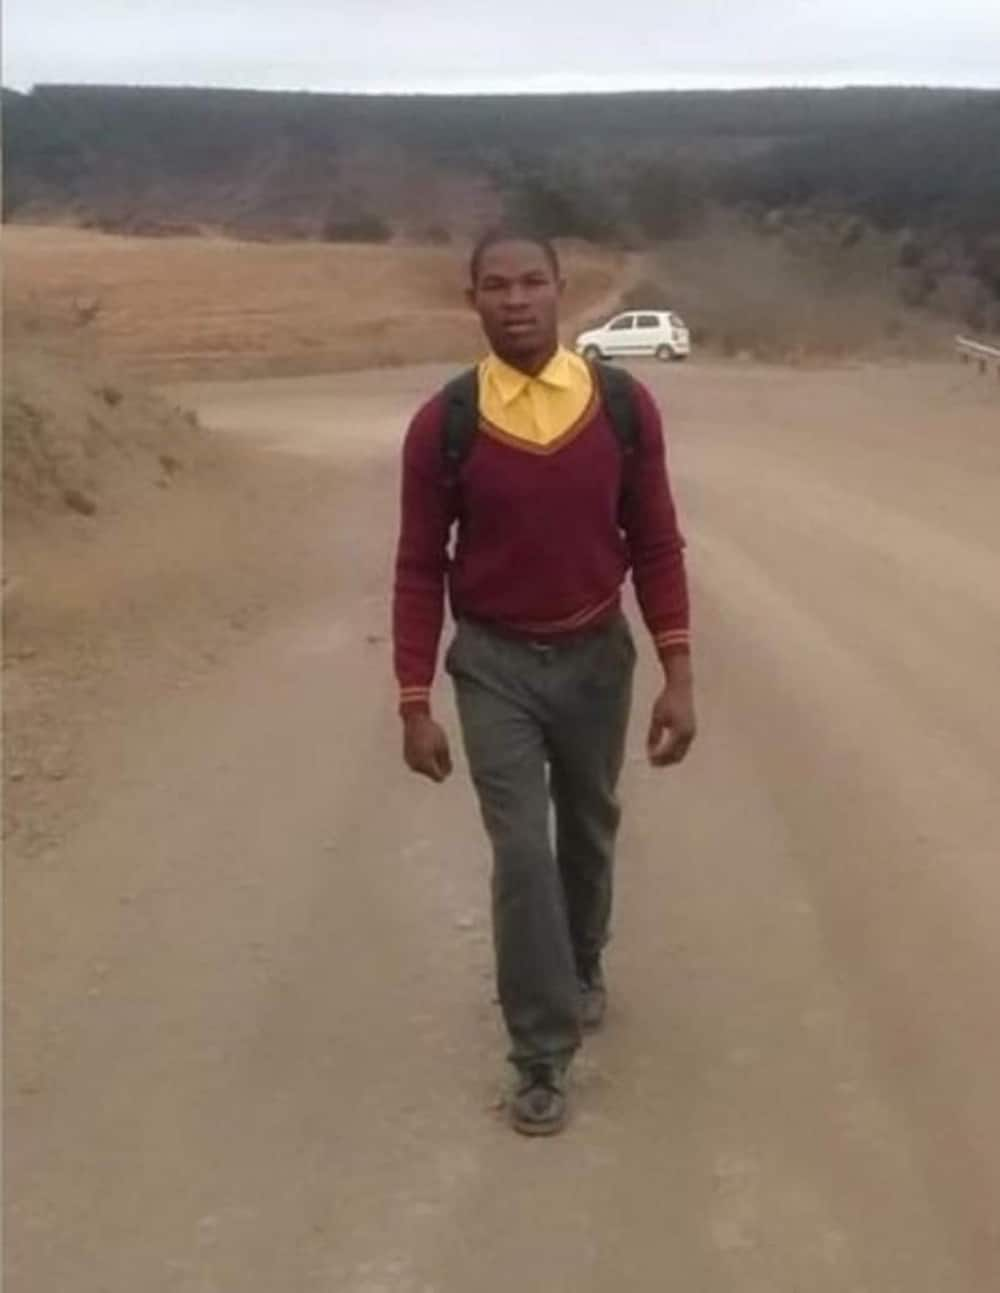 Dedicated Grade 11 pupil walks 20km to and from school each day